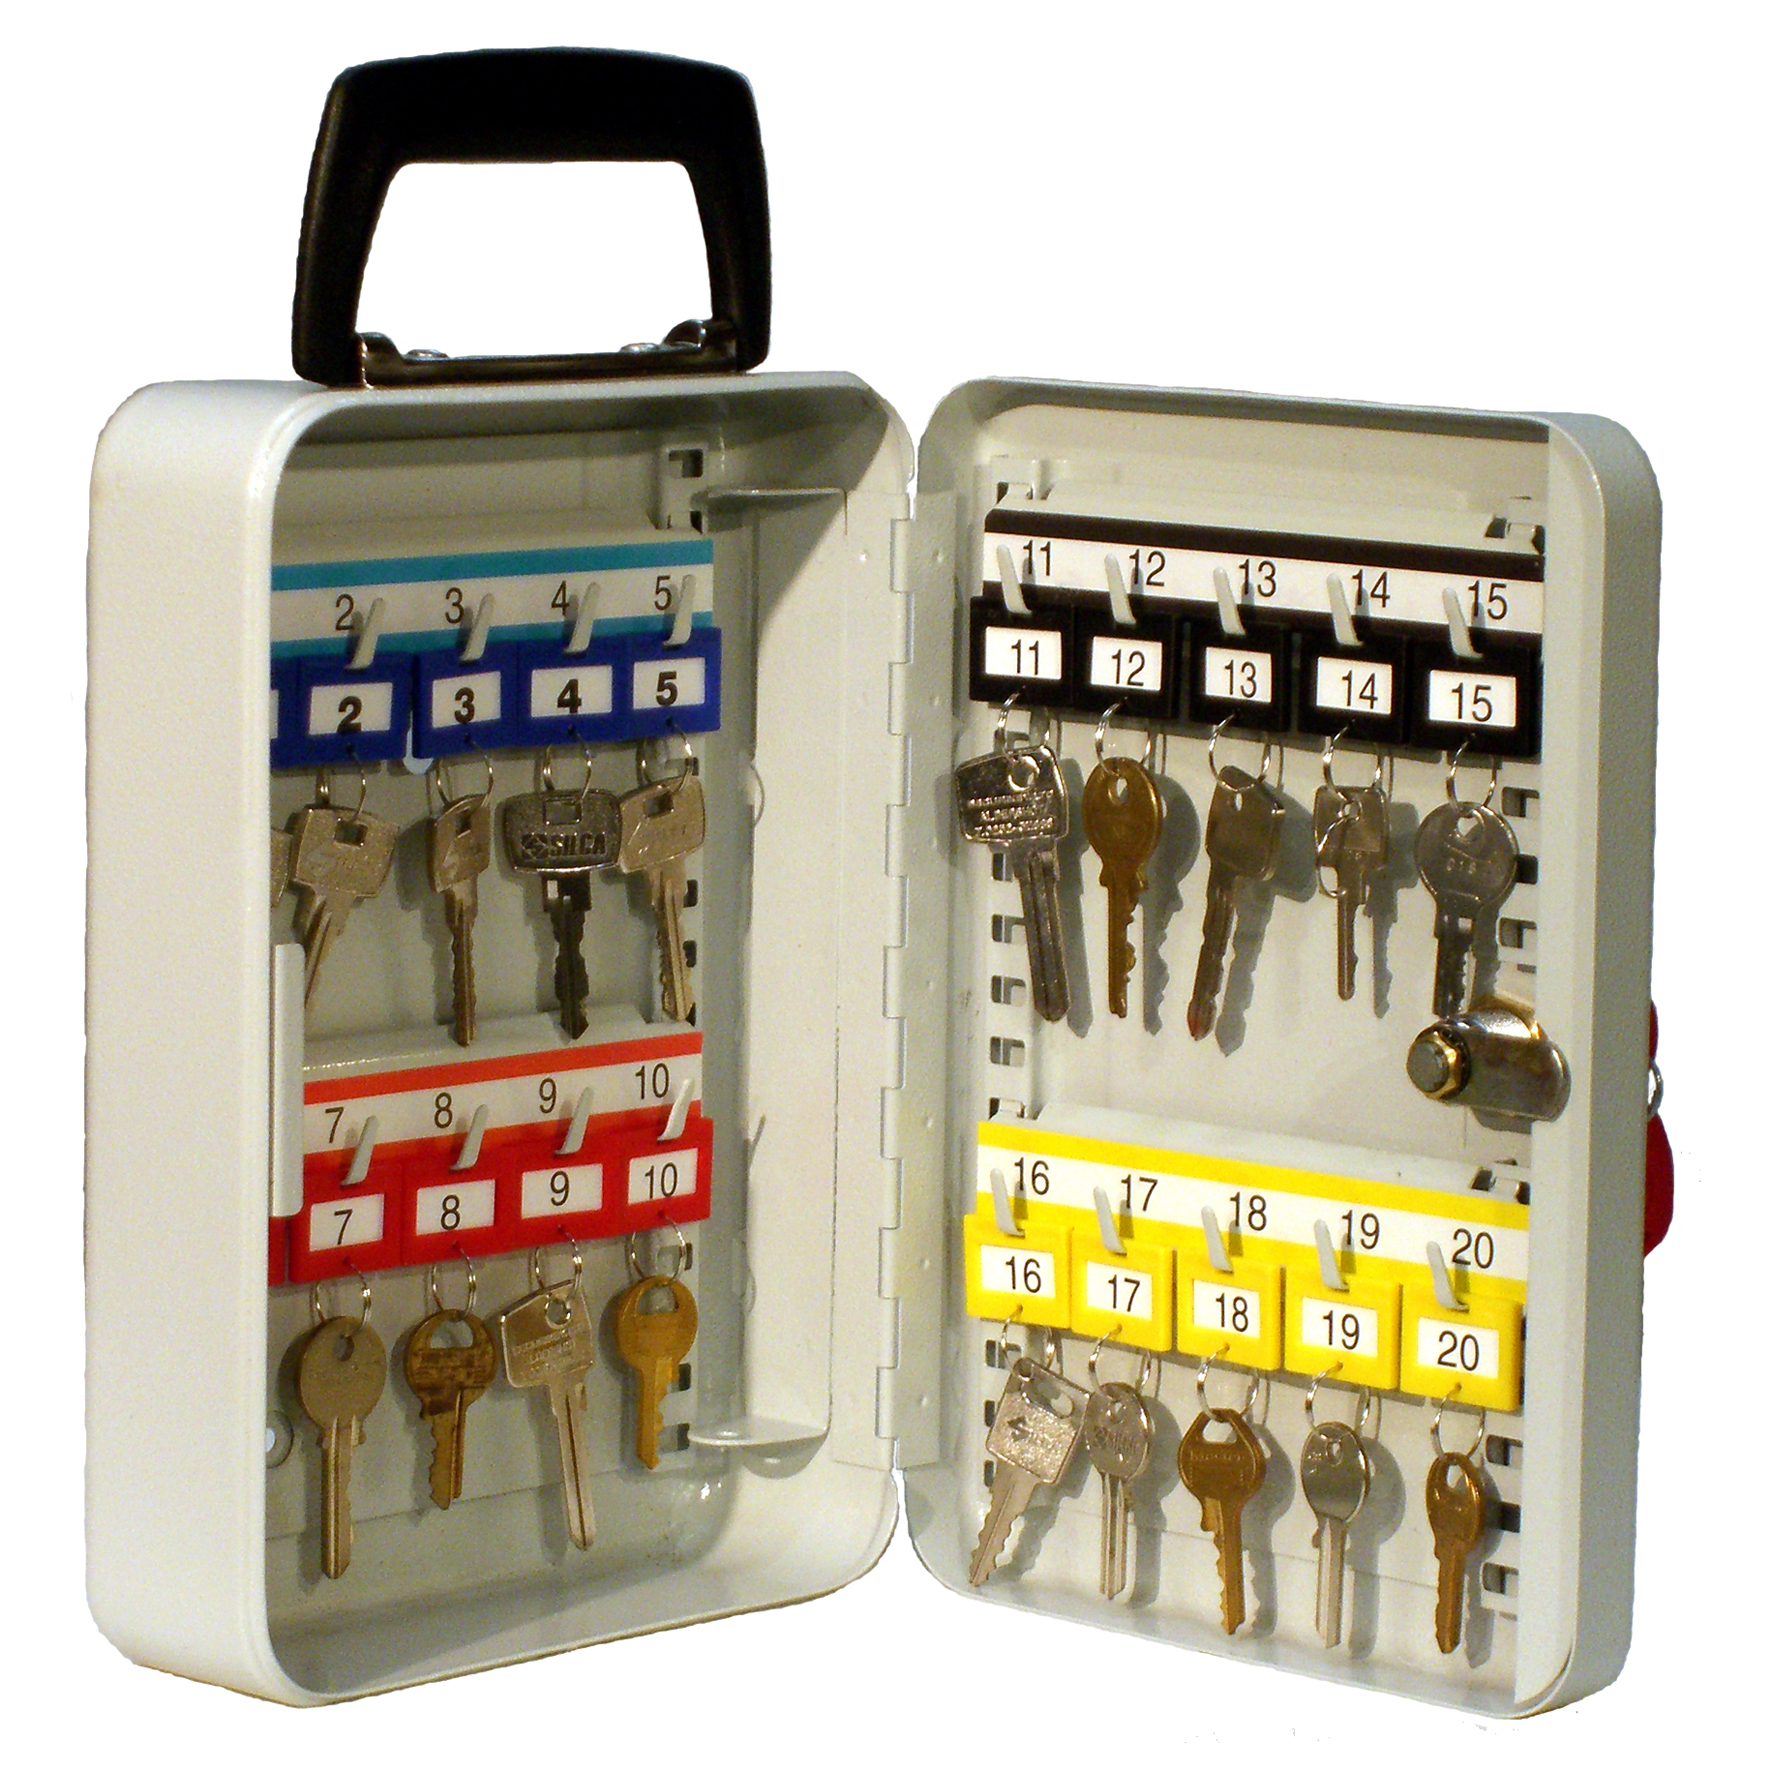 Mobile Key Cabinet with handle for 20 keys with a keyed lock